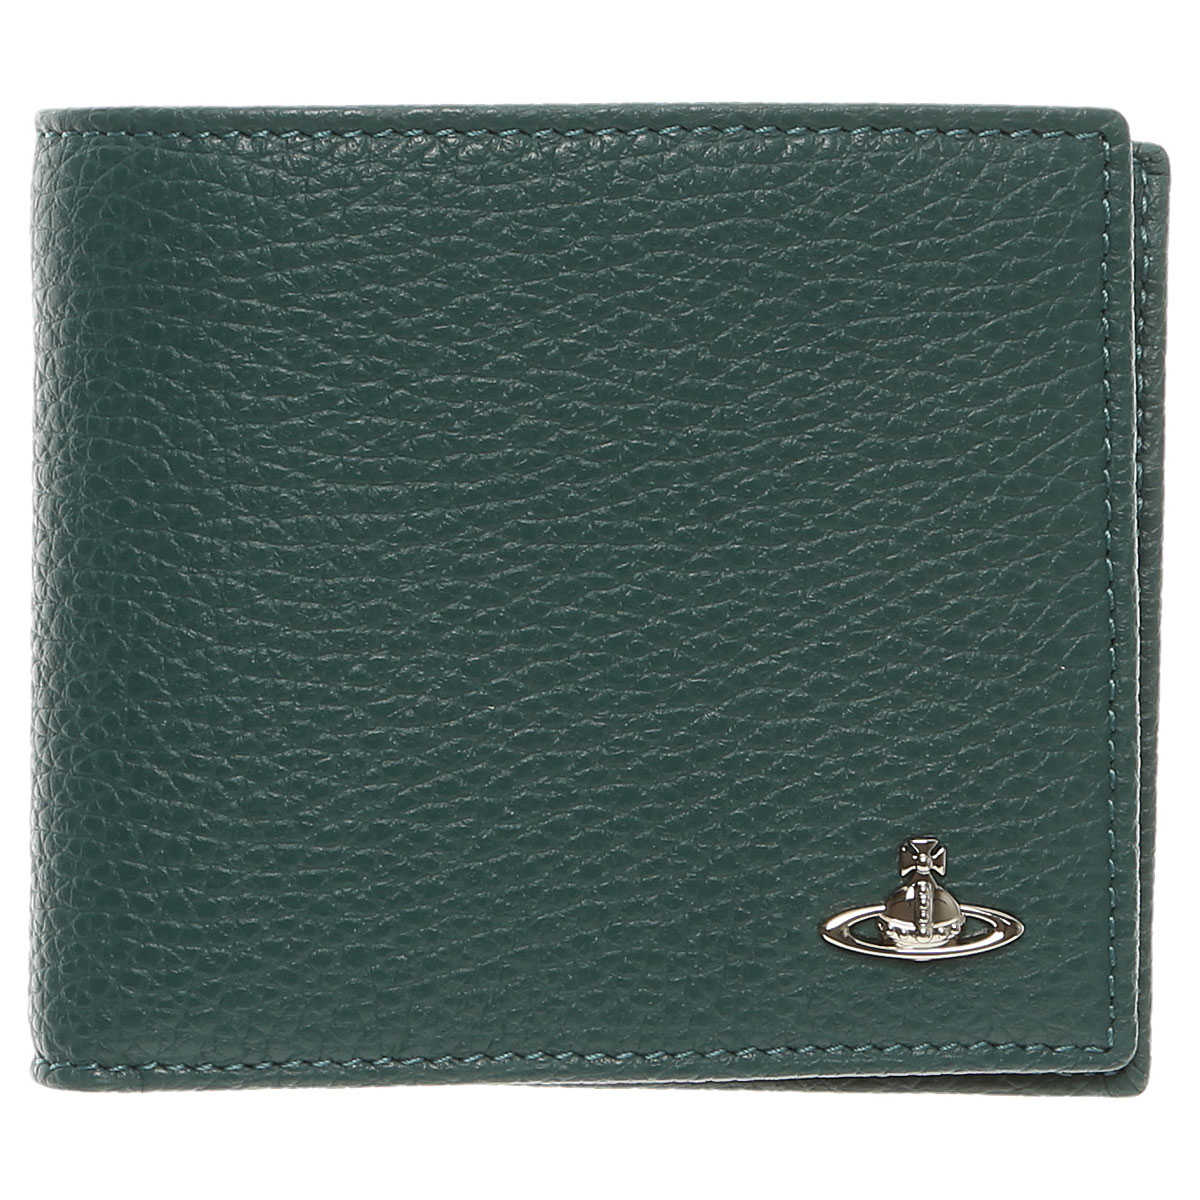 Vivienne Westwood Wallet for Men On Sale Dark Green SE - GOOFASH